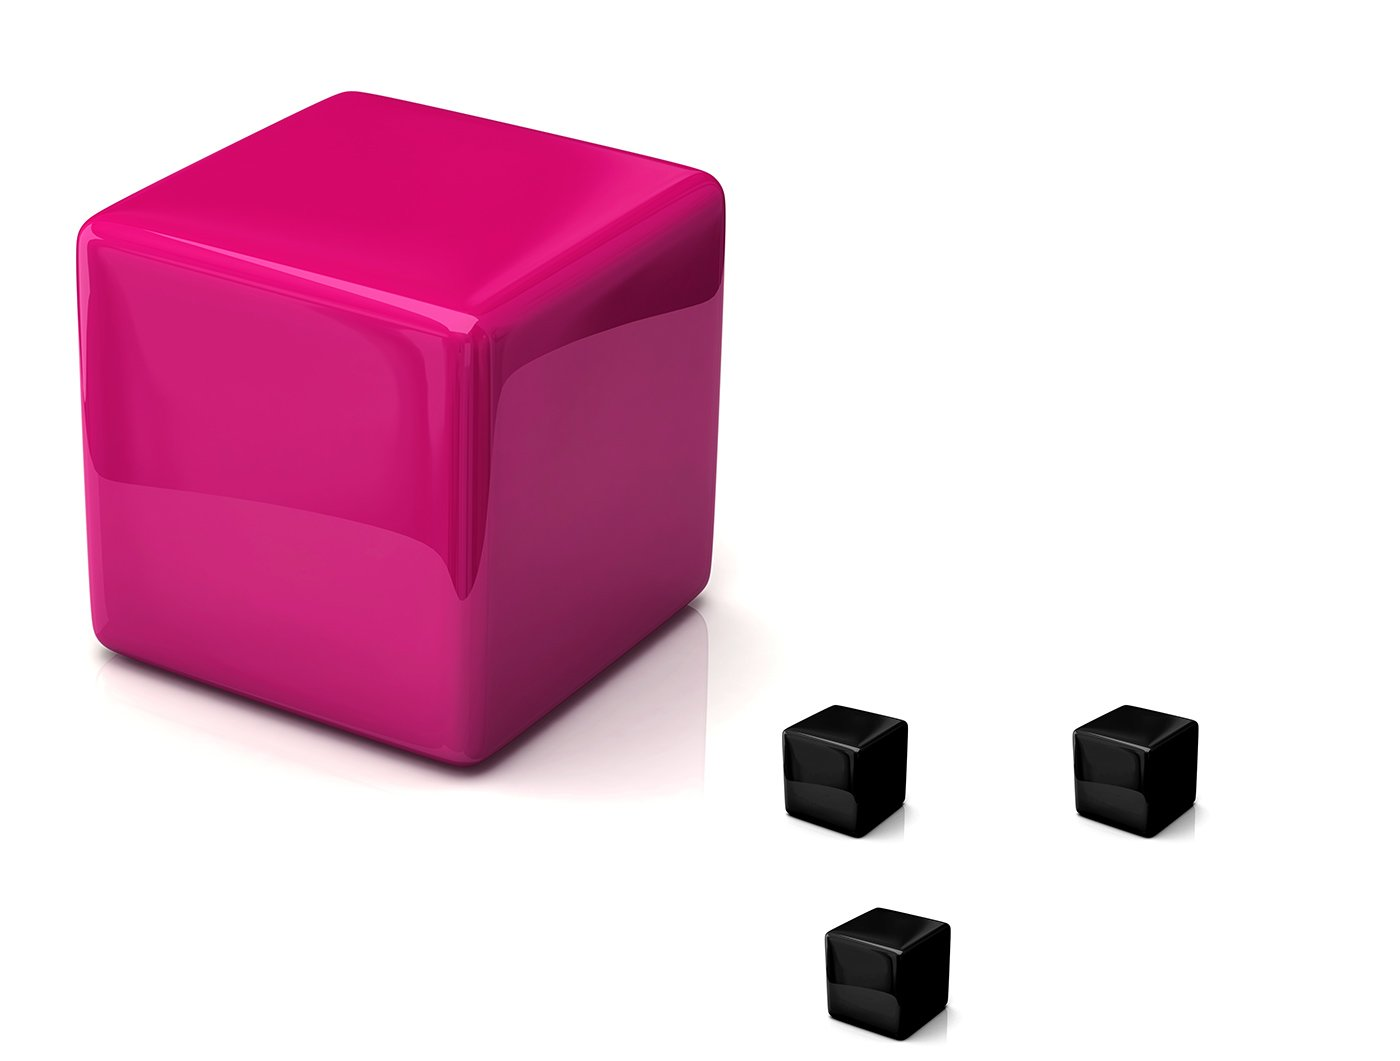 large cube defending from smaller black cubes